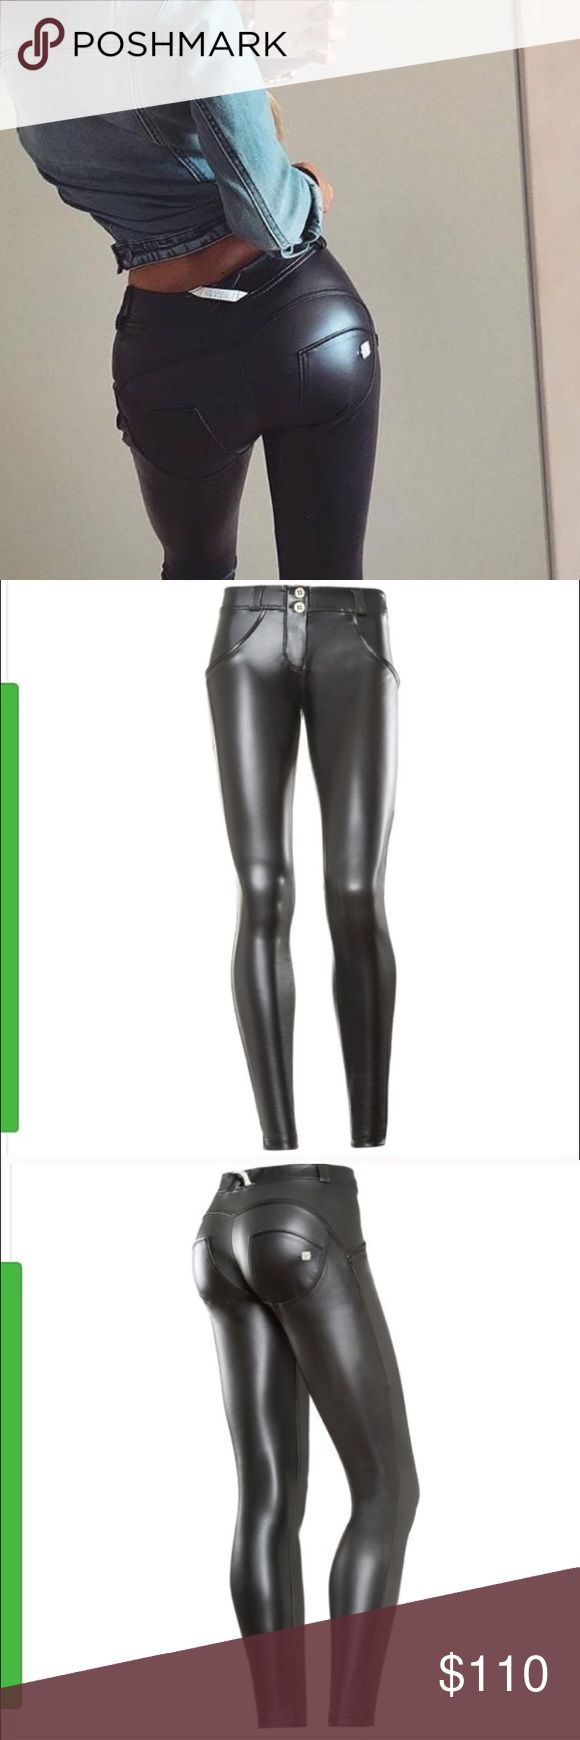 New Freddy store WR up leather black pants Small Brand new with tags. Famous Freddy Store WR Up shaping MID Rise black leather effect skinny pants. Size Small. Beautiful pebbled leather pants. With shaping and lifting effect. Size Small. Fits amazingly. So stretchy. All sold out on the website Freddy Pants Skinny